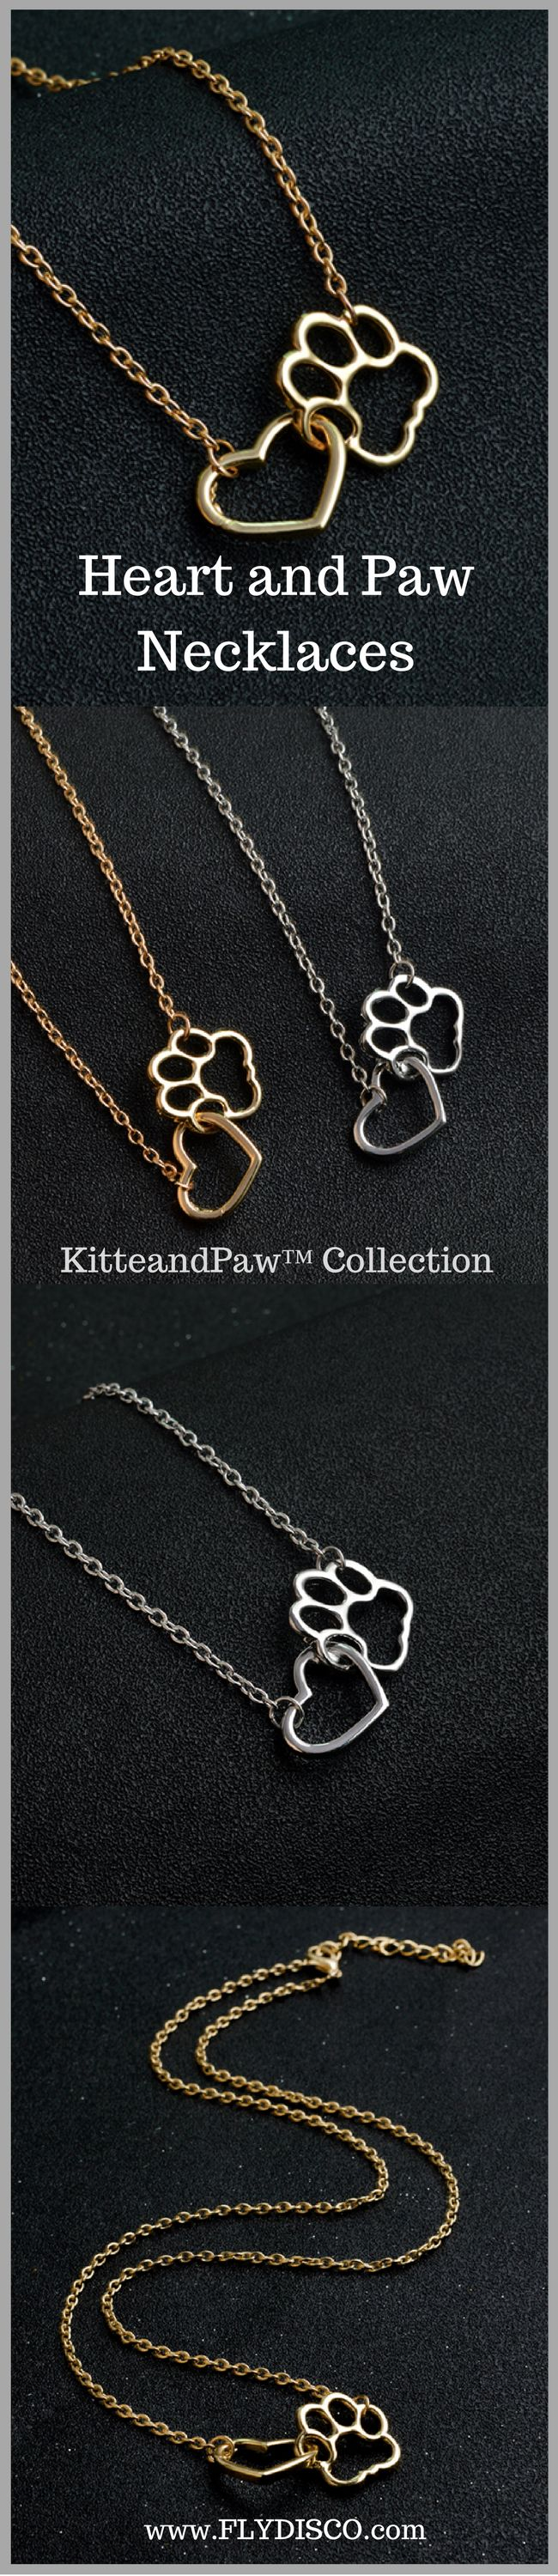 KitteandPaw™ - Heart and Paw Necklaces   Especially for cat lovers ❥ Keep your love close to your heart.